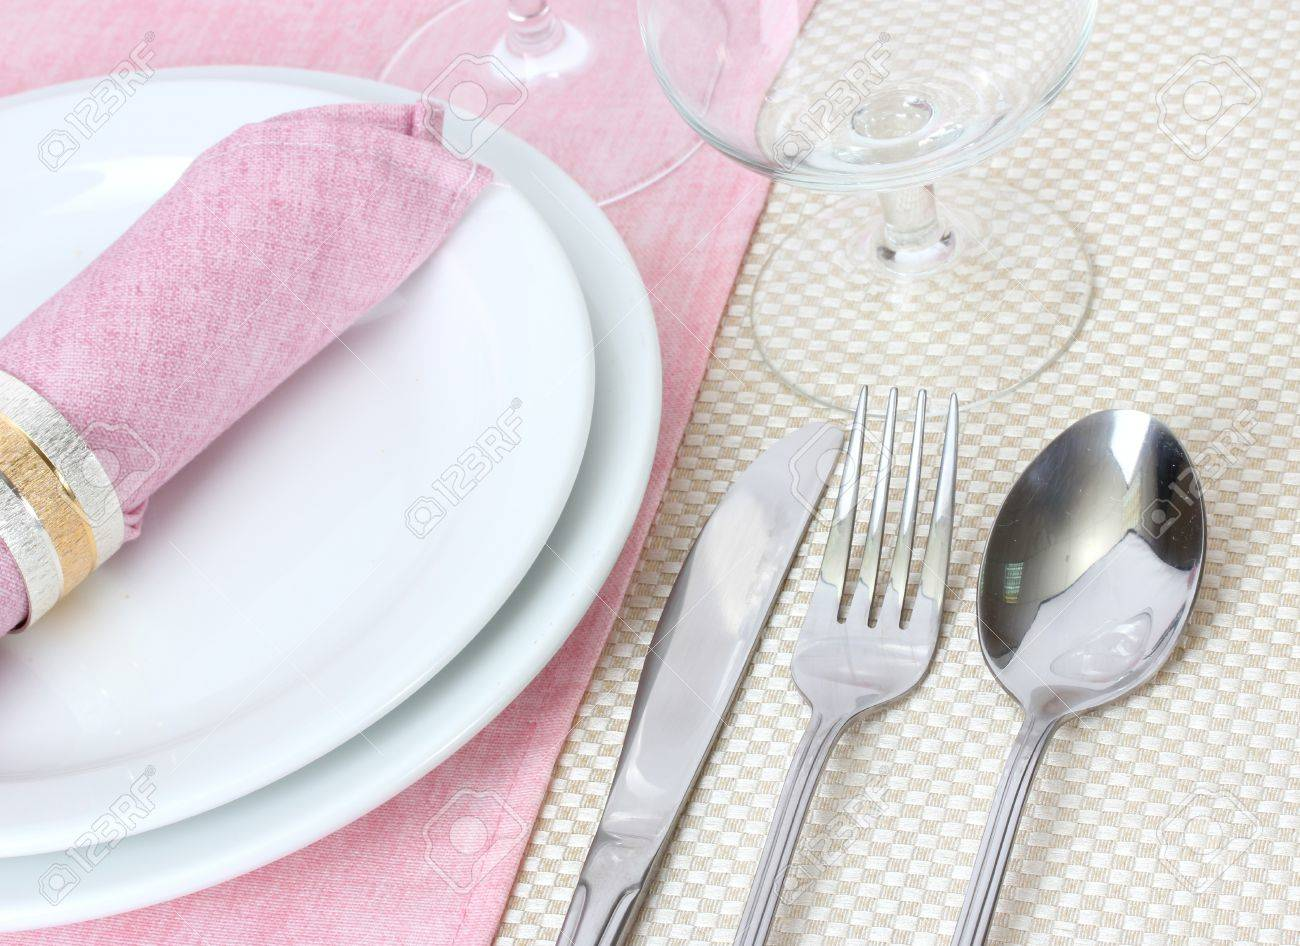 Table setting with fork, spoon, knife, plates, and napkin Stock Photo - 13356211